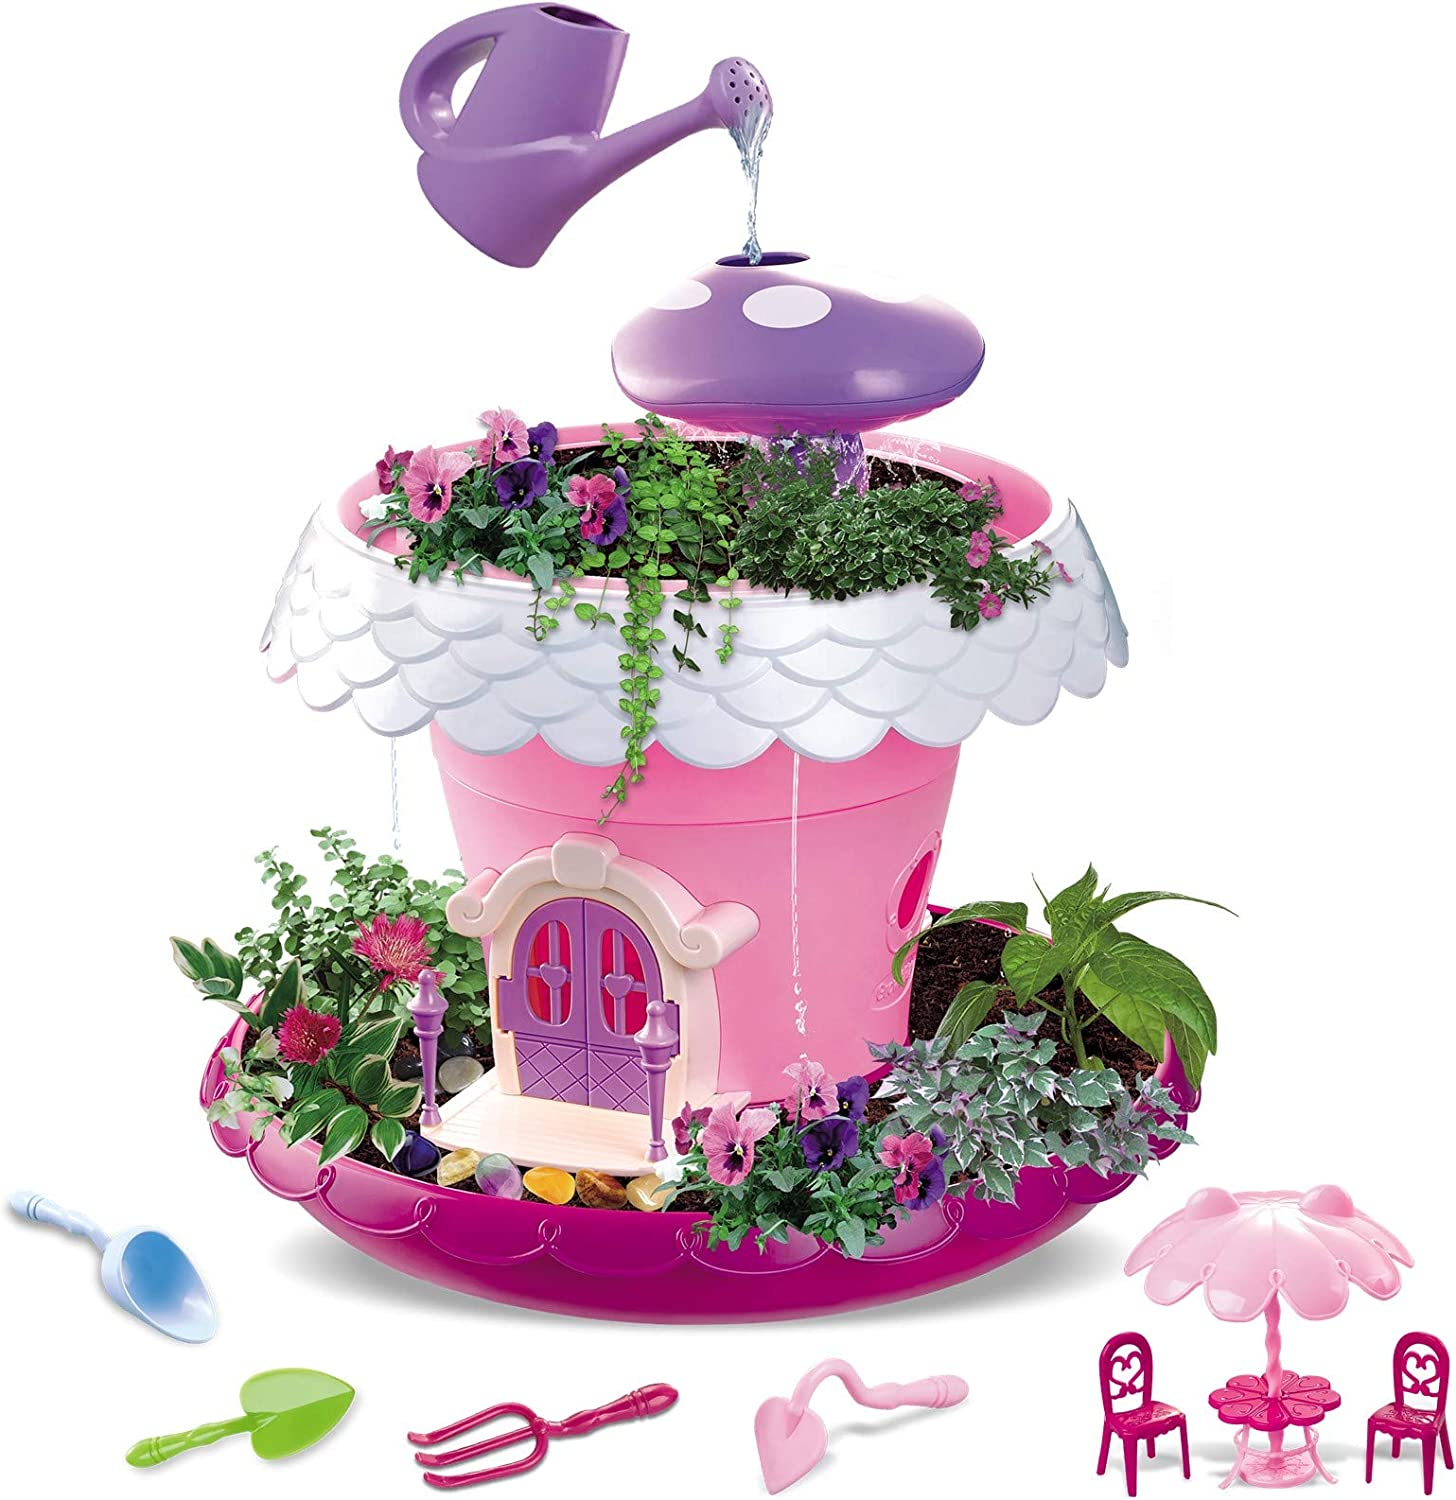 Vokodo Kids Magical Garden Growing Kit Includes Tools Seeds Soil Flower Plant Tree House Interactive Play Fairy Toys Inspires Horticulture Learning Great Gift for Children Pink